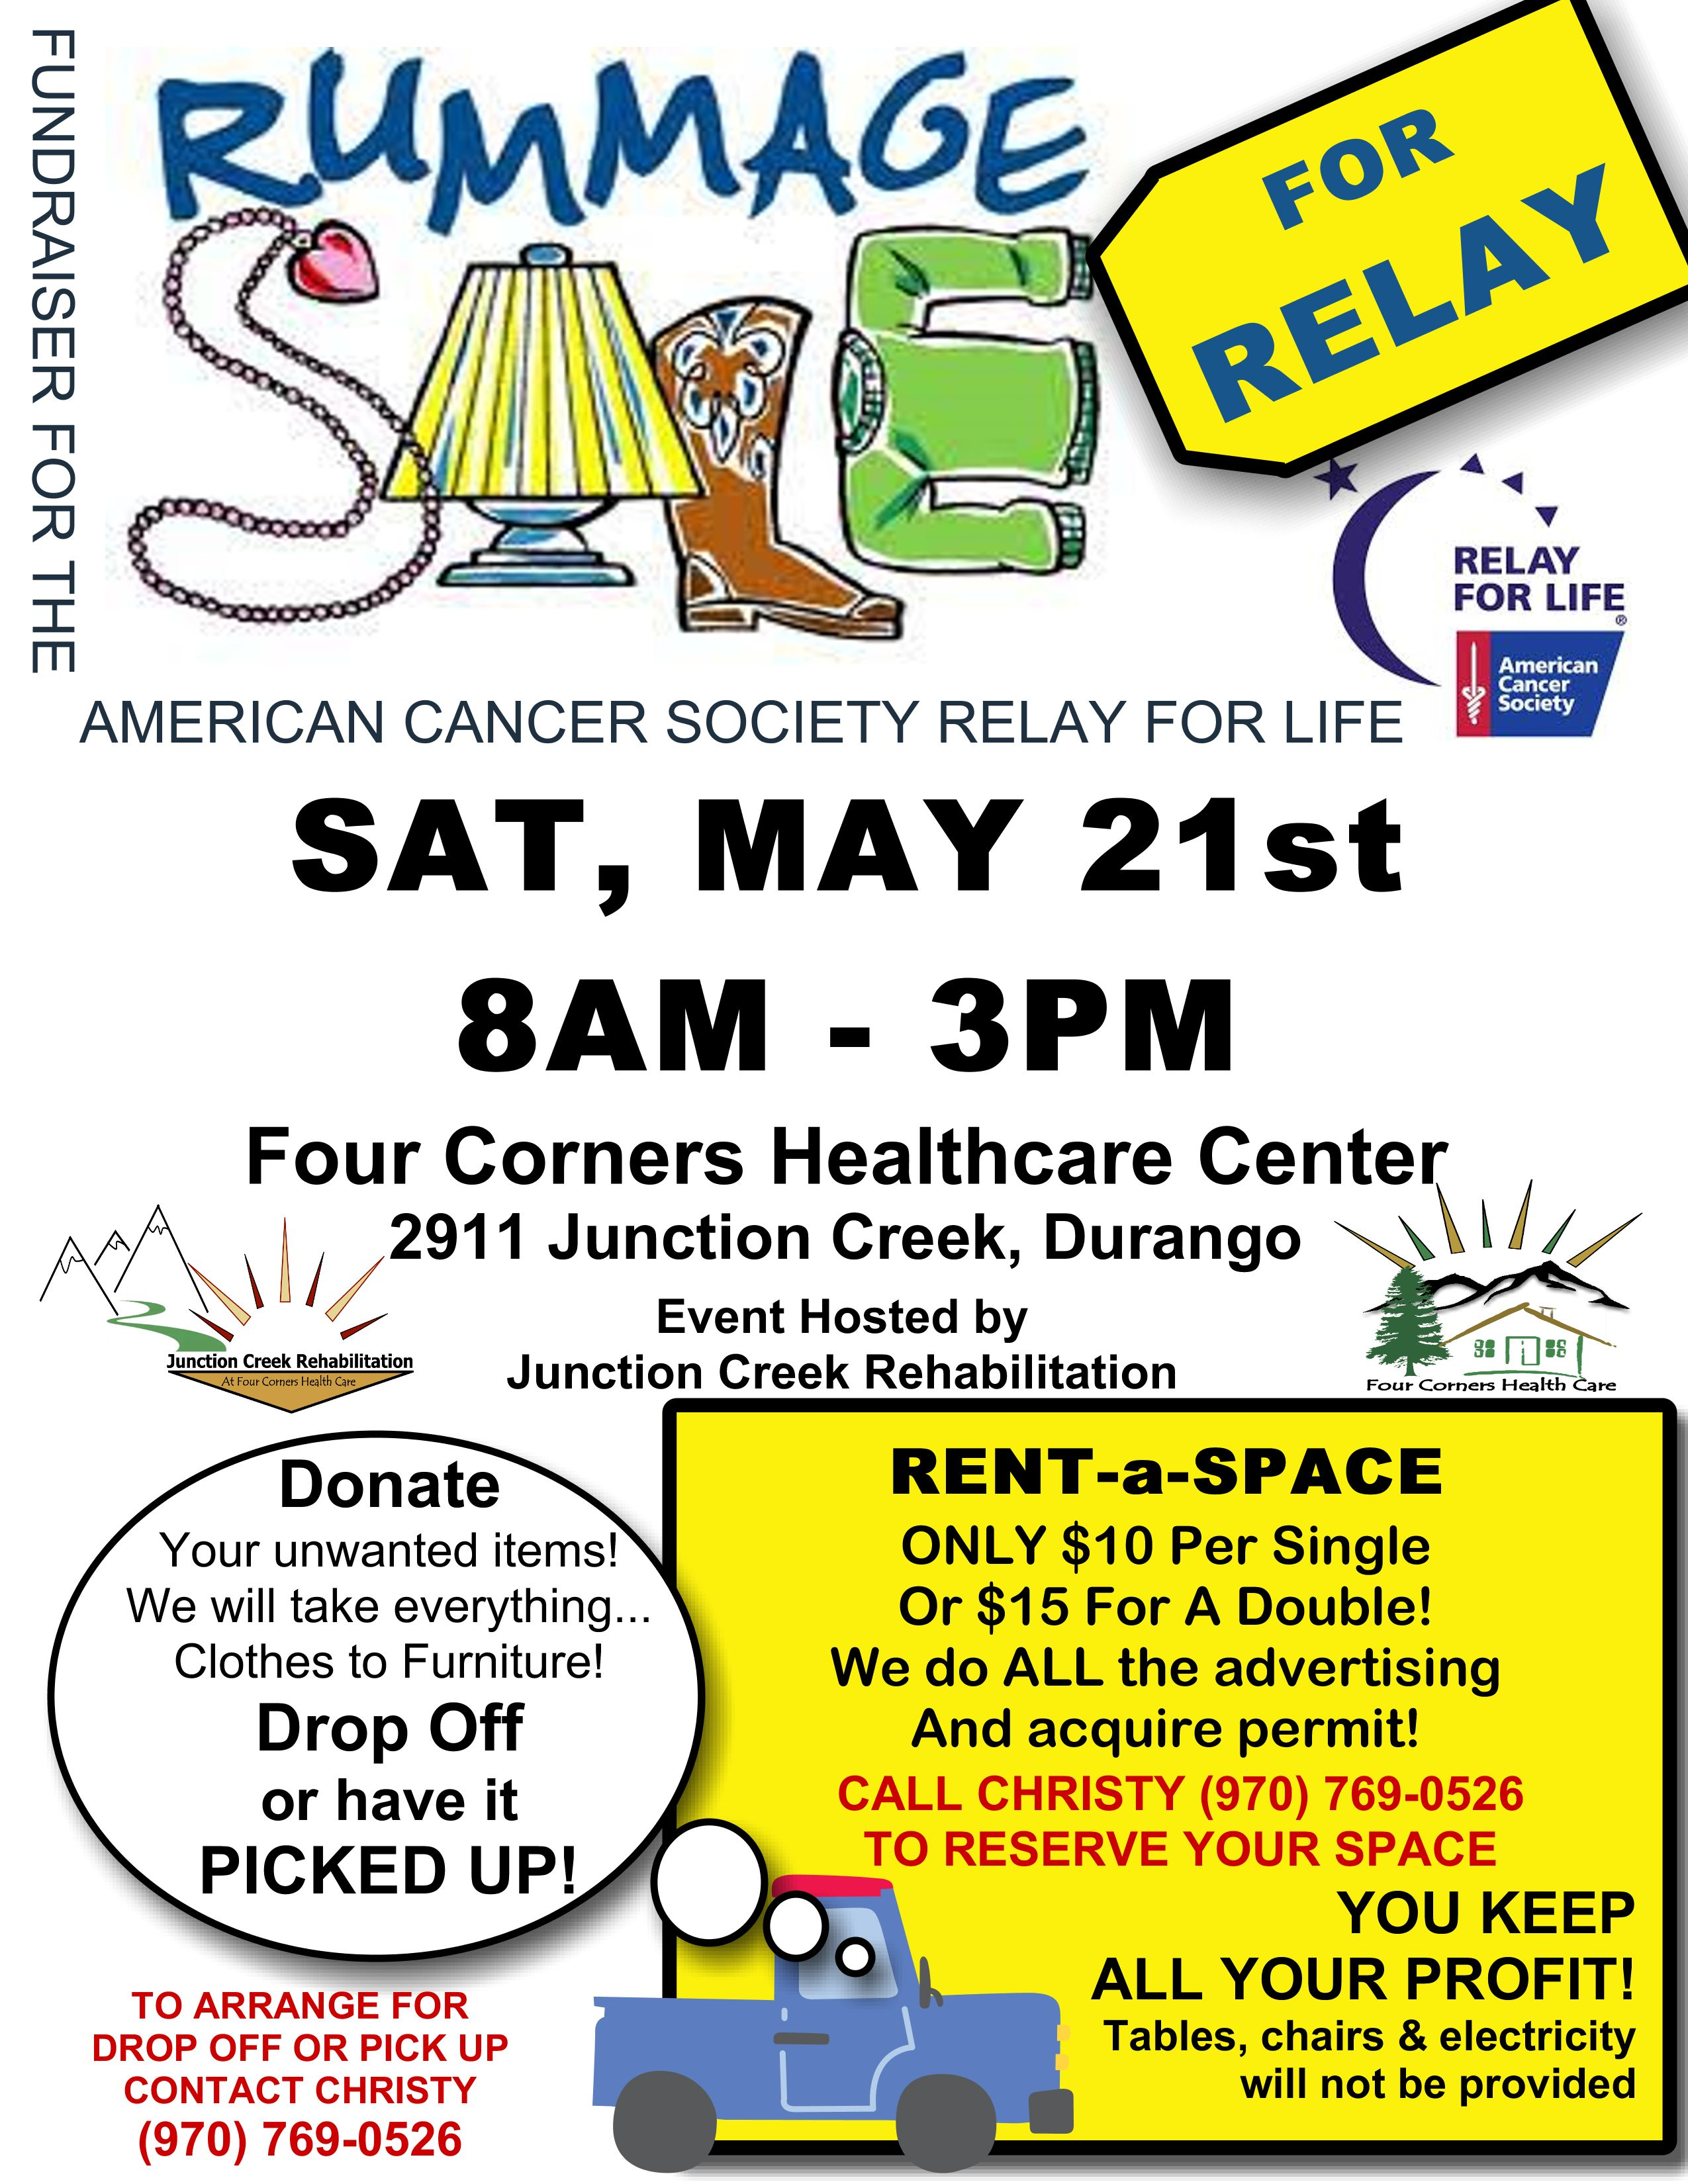 Rummage For Relay